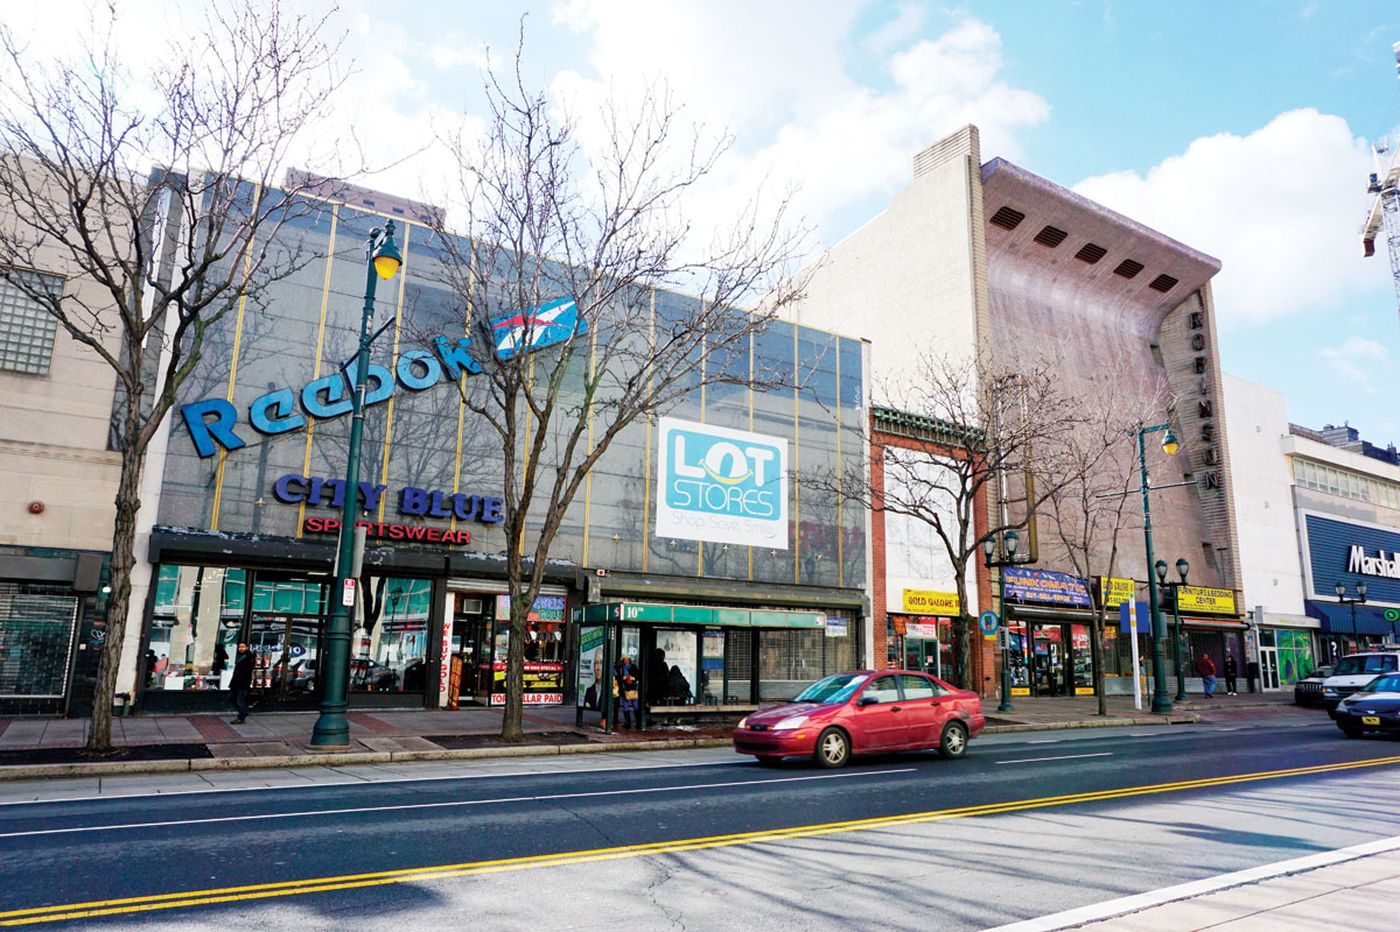 Gallery redevelopers PREIT, Macerich buy 3 more Market St. buildings